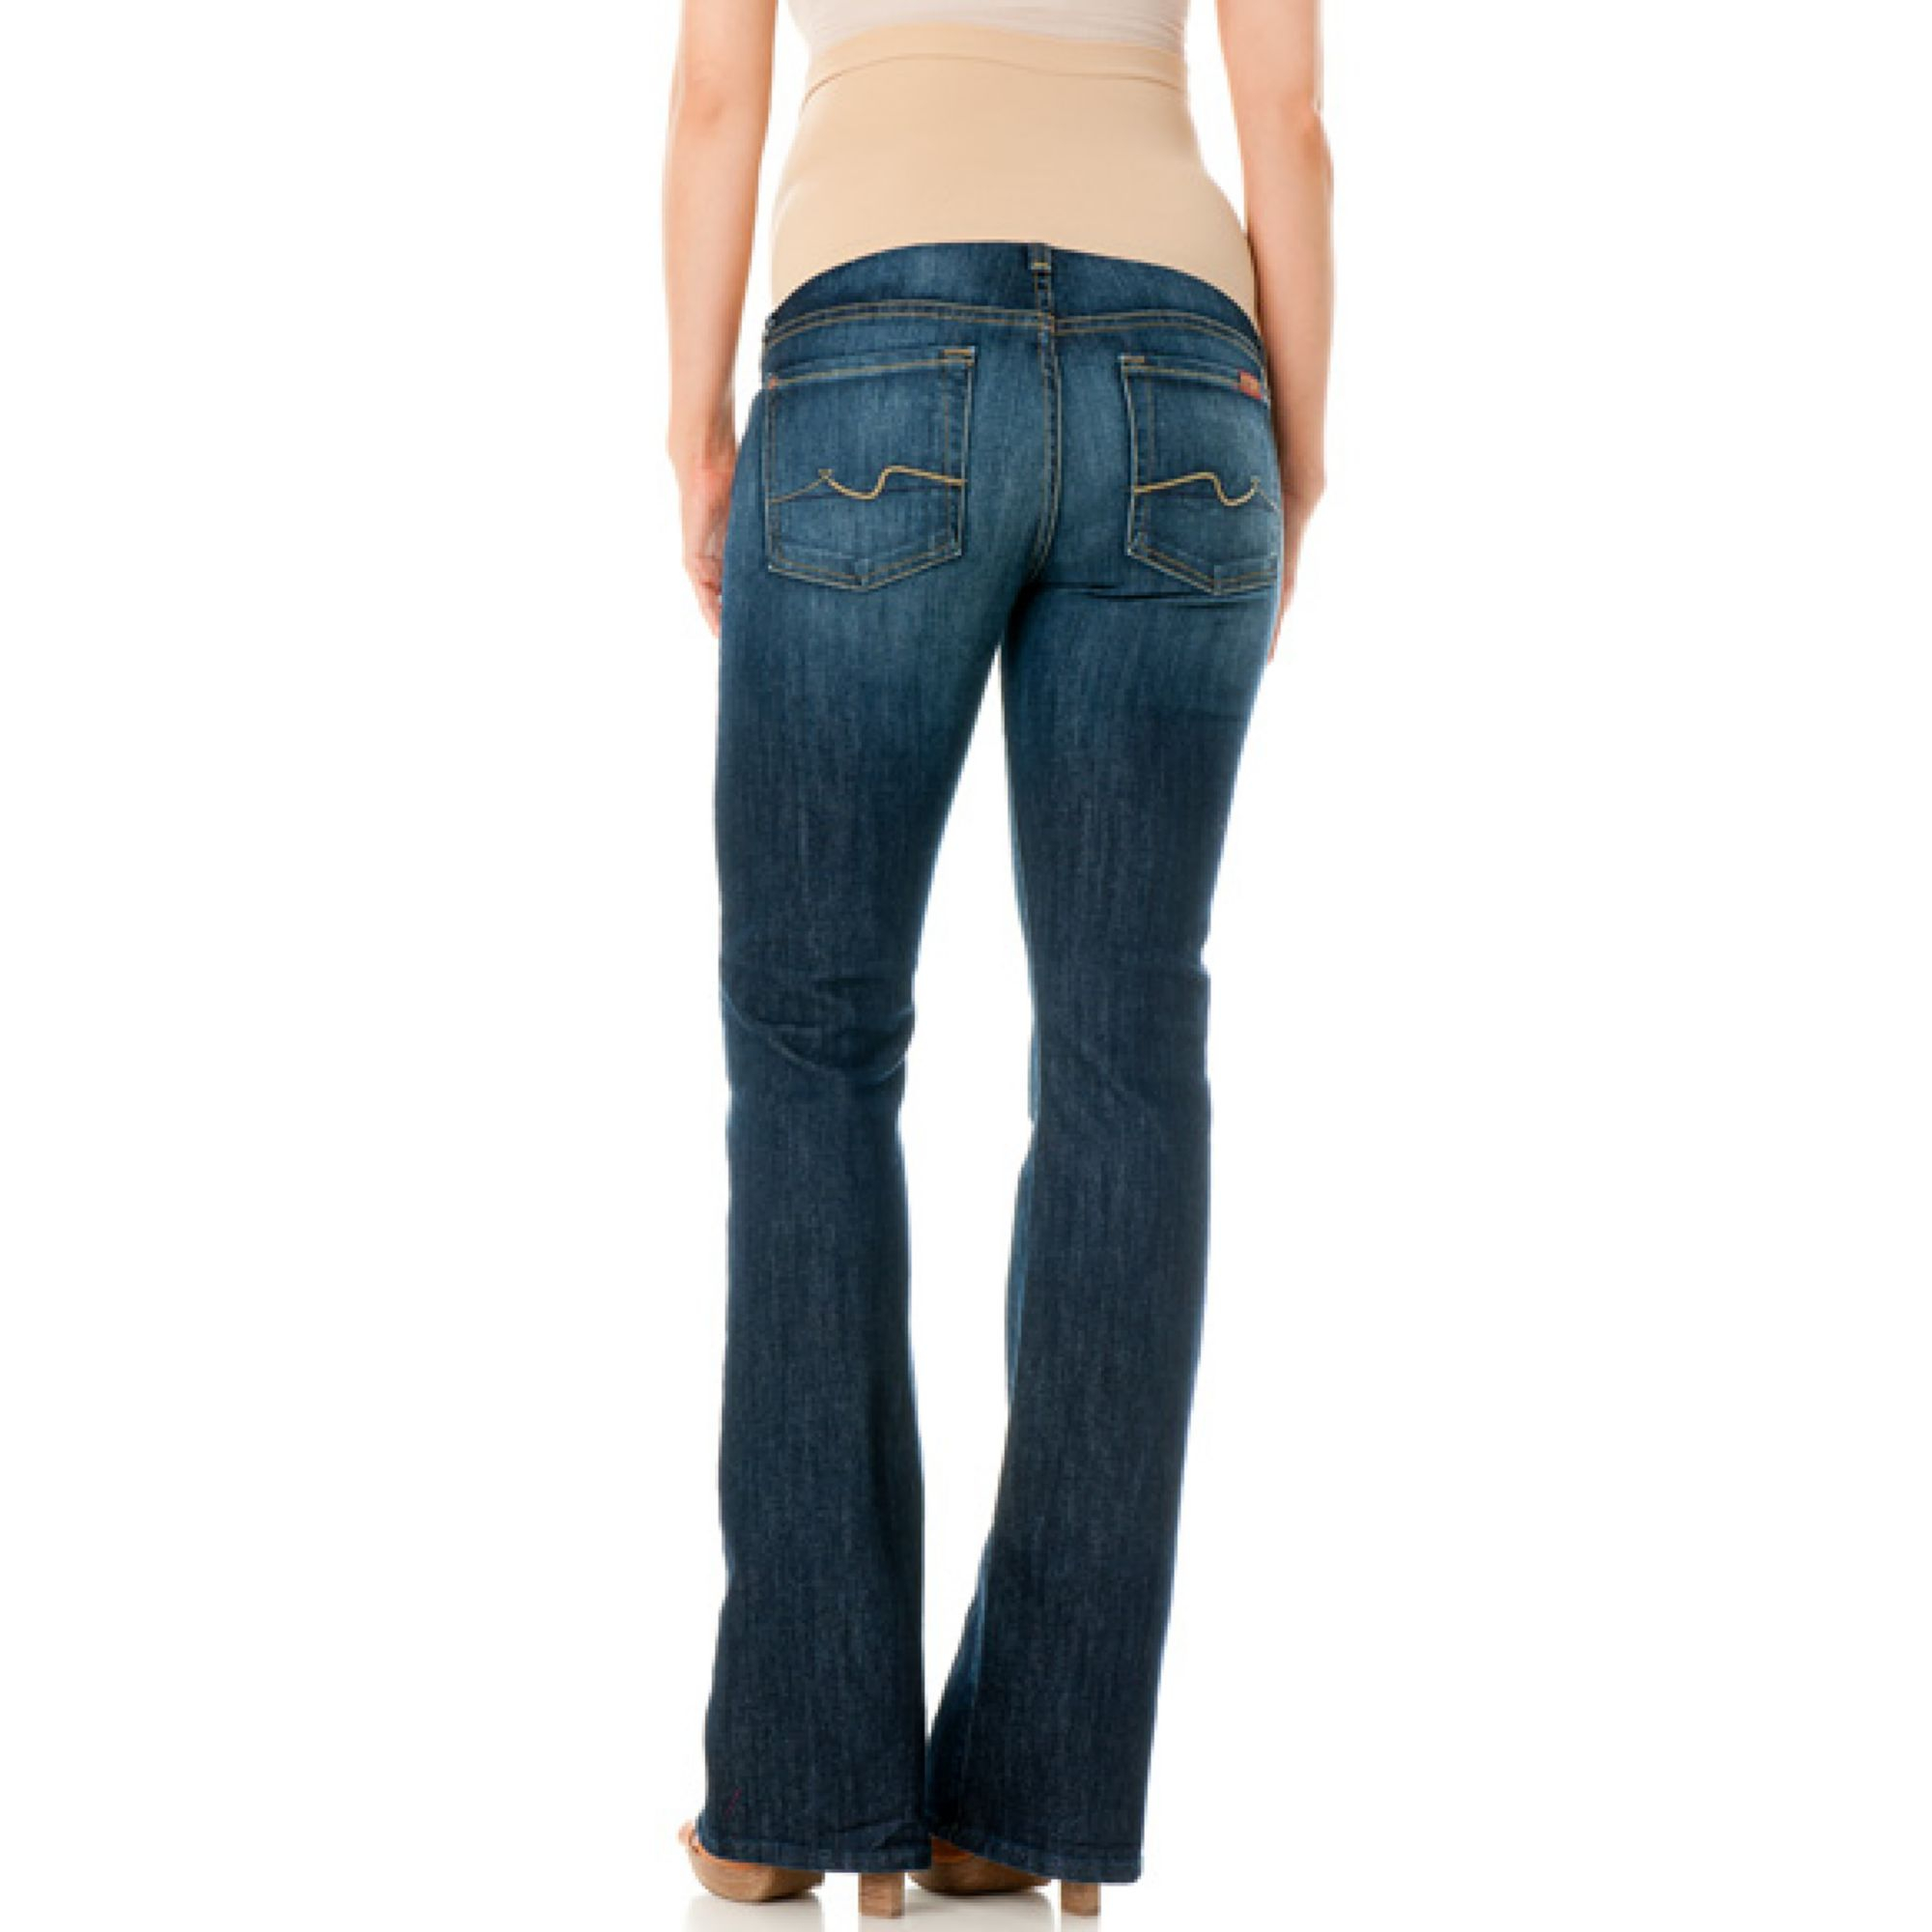 Product Description are a shortie and can't find maternity pants that fit well and are.